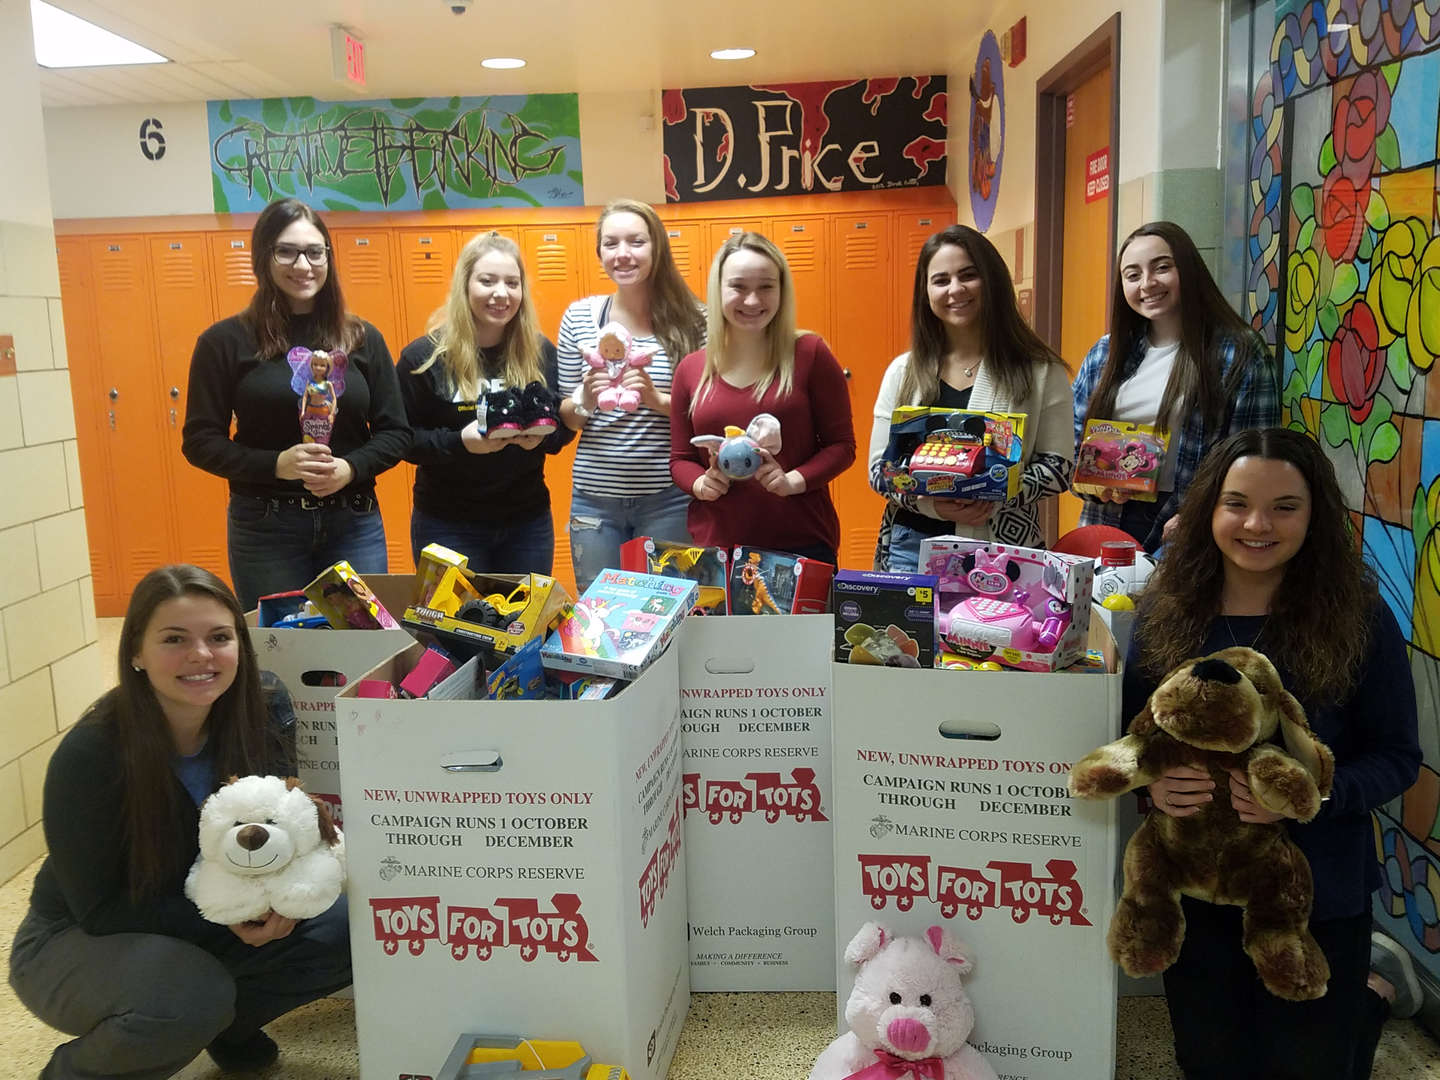 Thank you to all who encouraged our students to bring in toys for the TOYS FOR TOTS drive. This year CAP/SADD collected a total of 252 toys. Shown below is a picture of some of the CAP/SADD students with the toys!  (The movie will be pds. 6, 7, and 8 on Friday, December 19th. The movie will either be Incredibles 2 or The Greatest Showman.)